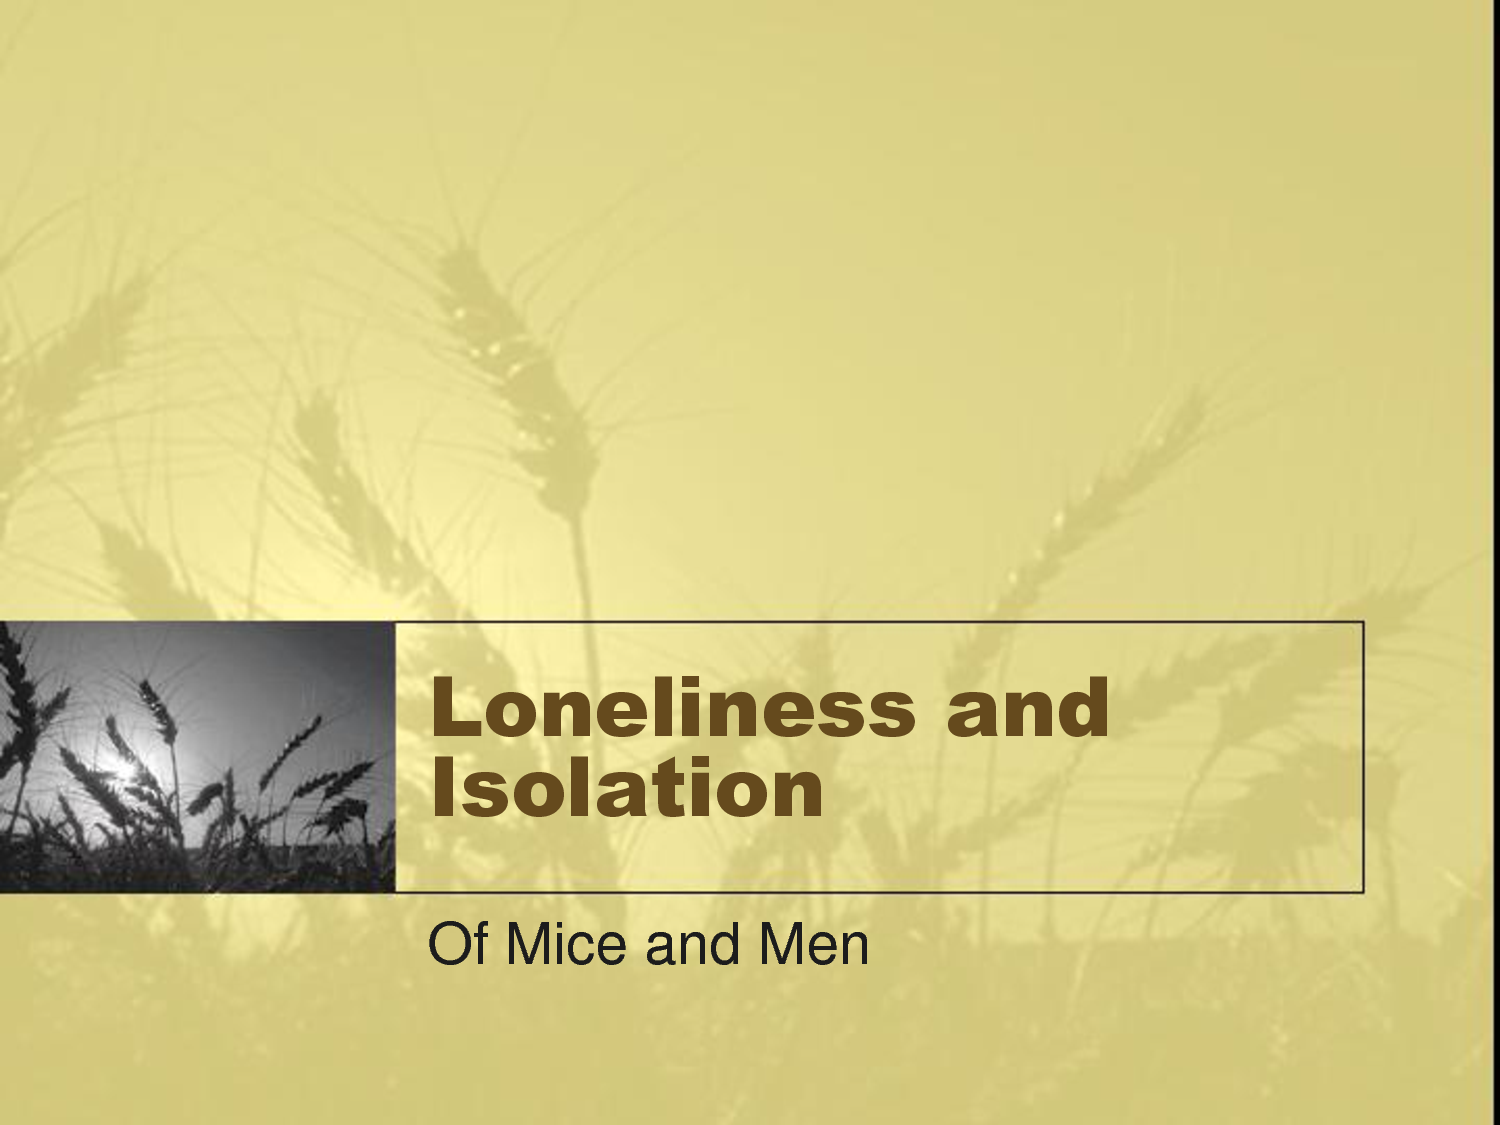 """of mice and men loneliness 76 quotes from of mice and men: 'maybe ever'body in the whole damn world is scared of each other'  , loneliness 46 likes like """"at about 10 o'clock in the morning the sun threw a bright dust-laden bar through one of the side windows and in and out of the beam flies shot like rushing stars"""" ― john steinbeck, of mice and men."""